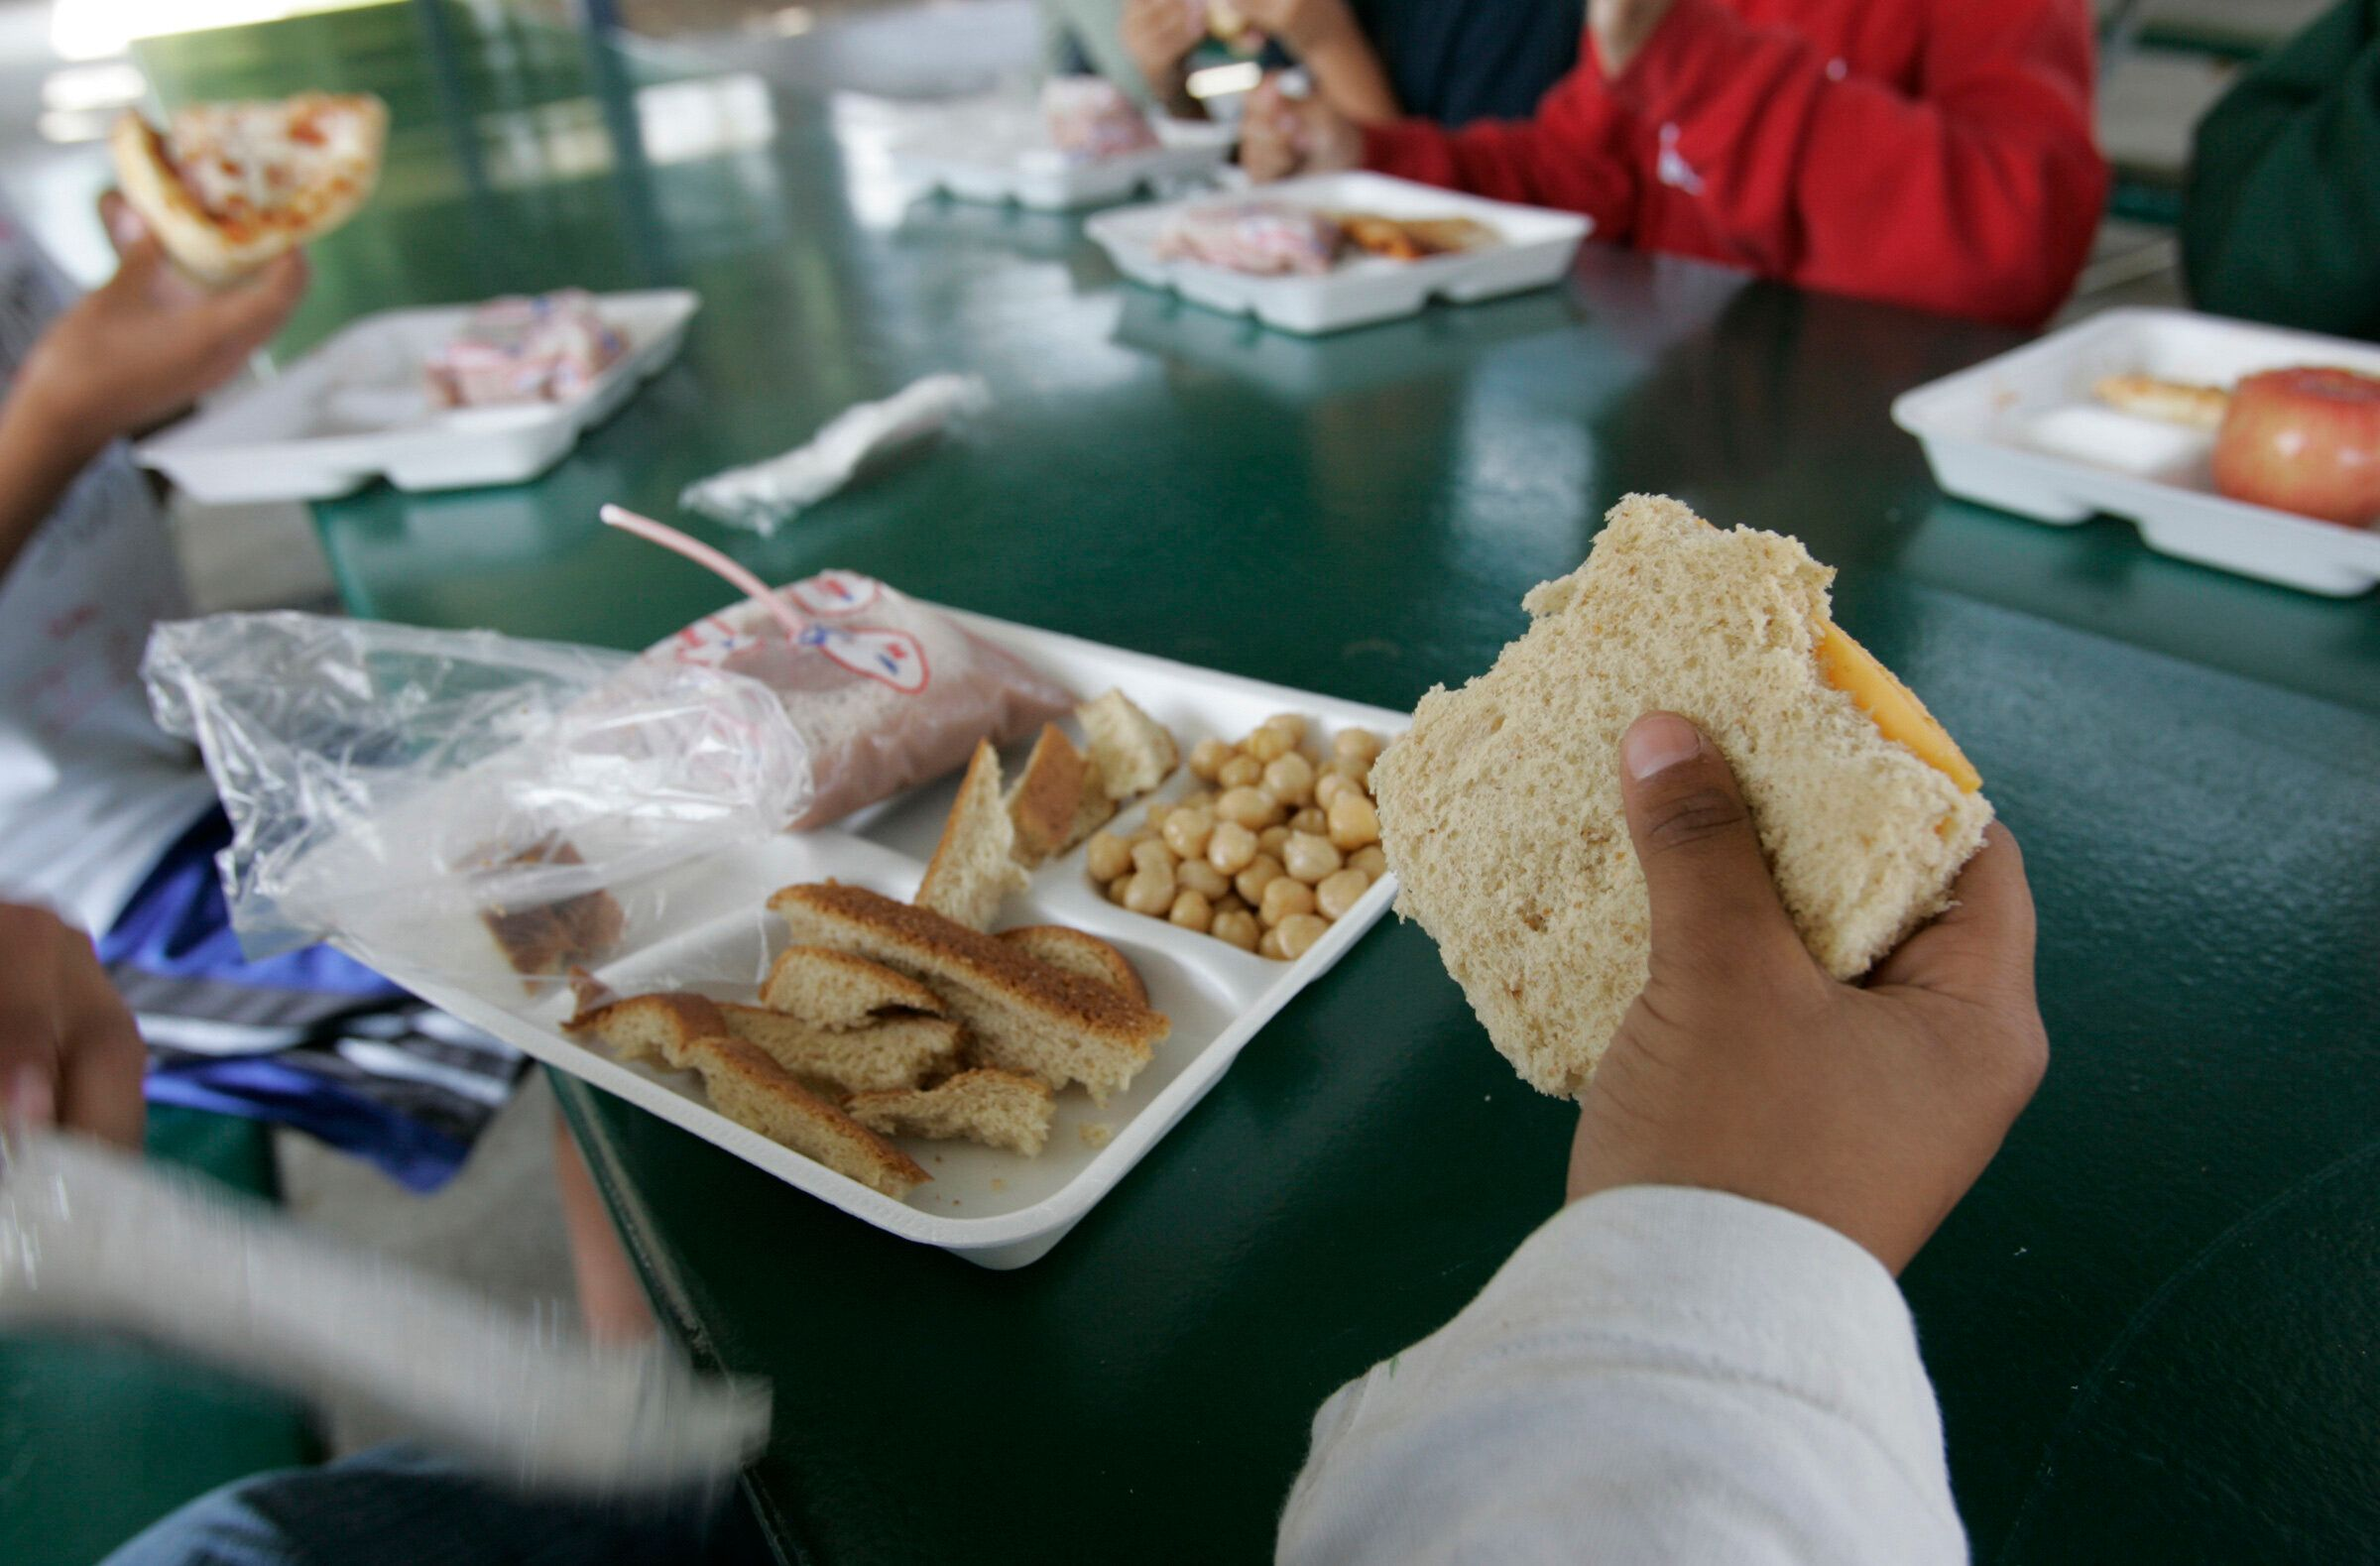 June 12, 2007. Chula Vista, CA. A 4th grade boy stripped the crust from his plain cheese sandwich. He added beans to his plate and chose chocolate milk to go with the meal. Students at Hilltop Elementary School whose parents are behind on school lunch payments can only choose a cheese or ham sandwich. They may add condiments and lettuce to the sandwich and get a drink and fruit but can't select the popular items like pizza or peanut butter & jelly sandwiches. – Since the limited choice was implemented, the Chula Vista Elementary School District has cut parental non–payments dramatically.  (Photo by Don Bartletti/Los Angeles Times via Getty Images)